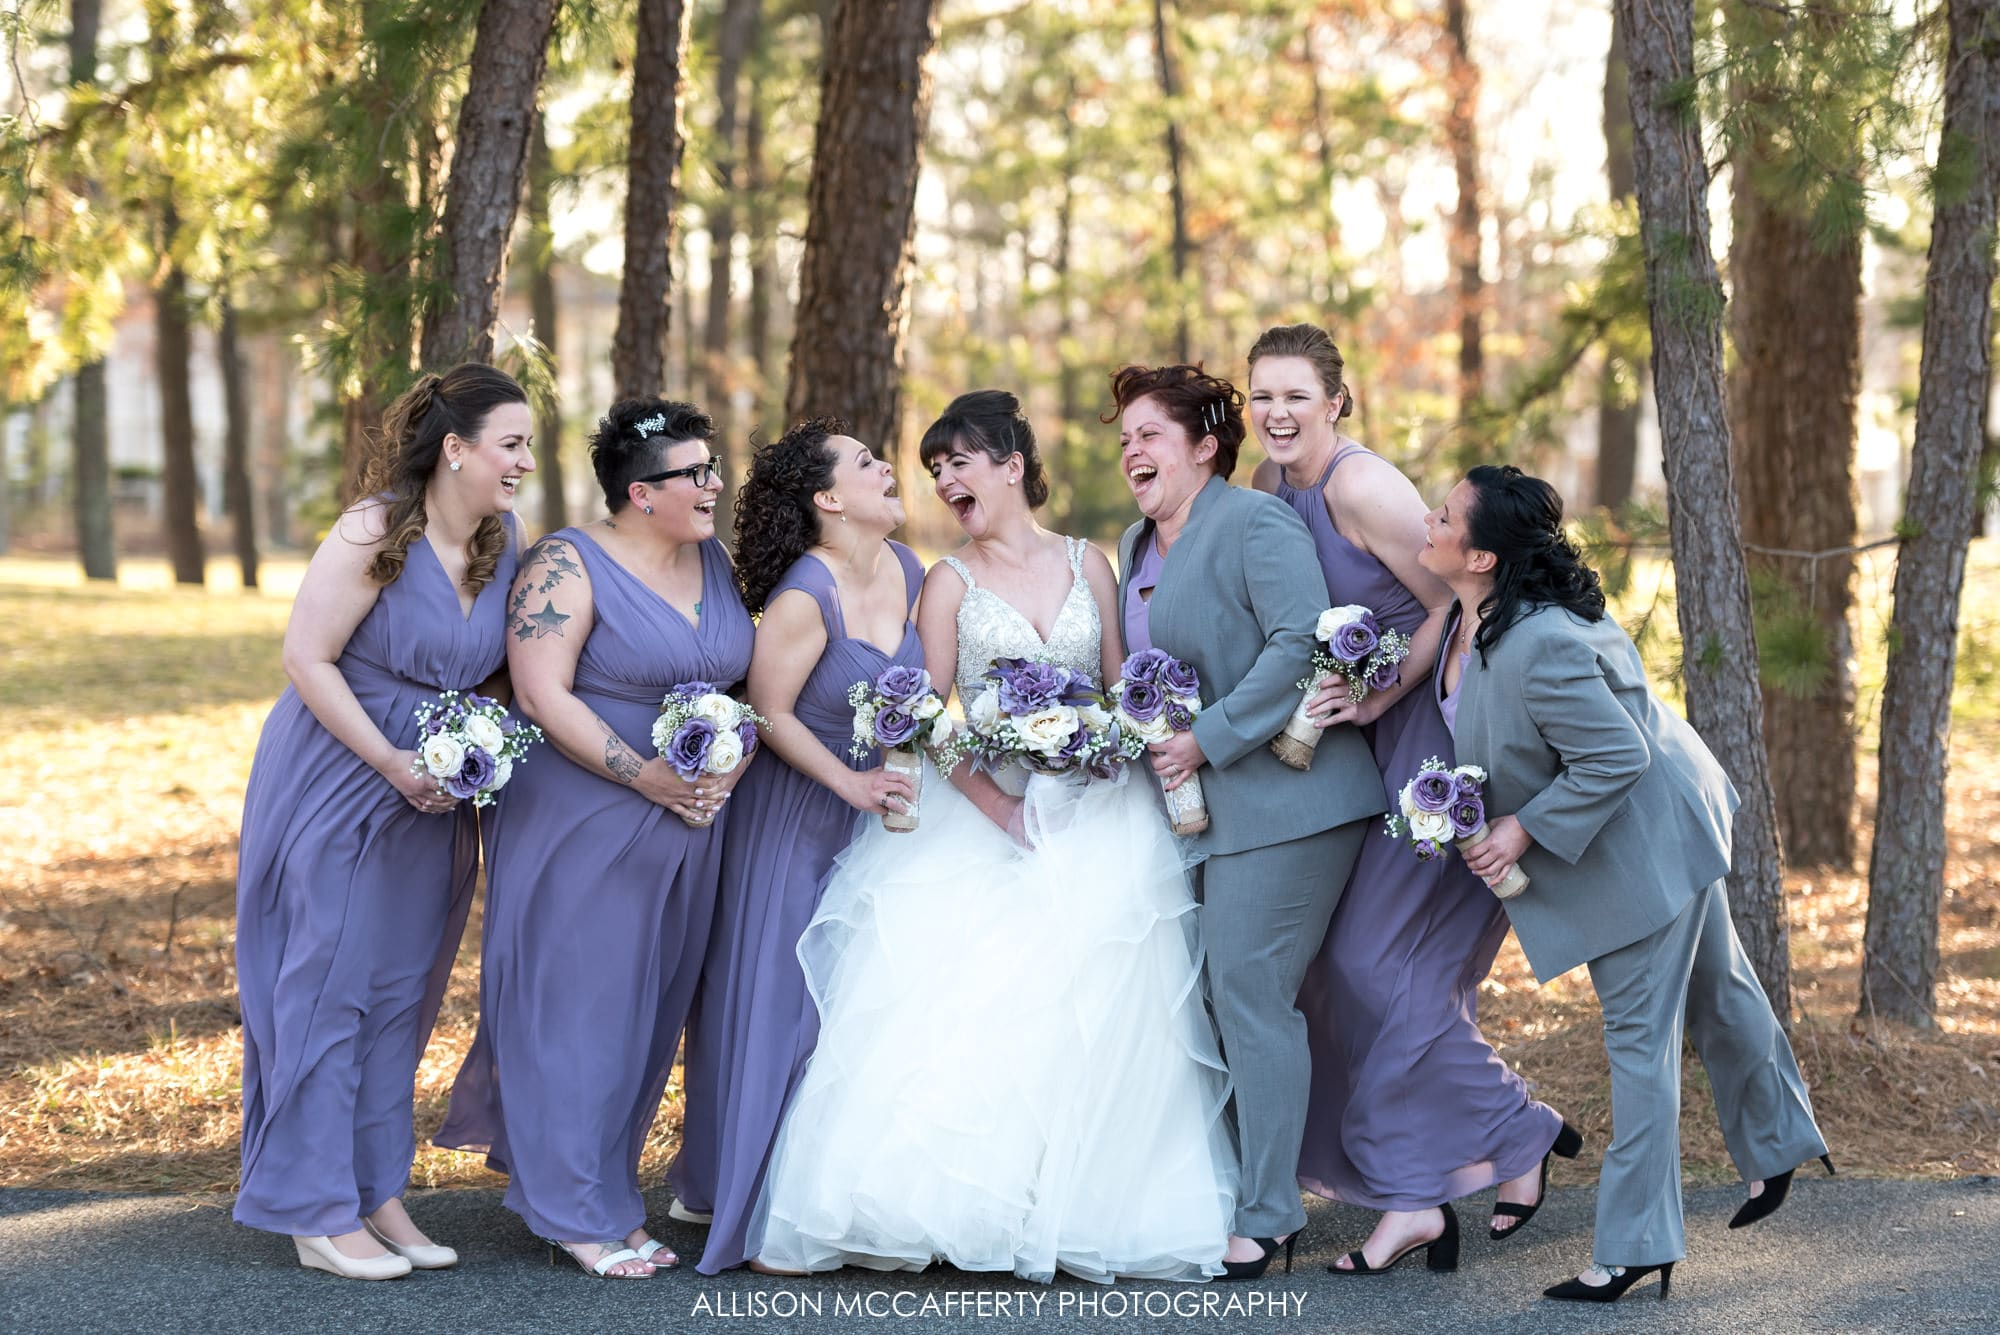 Bridemaids in purple dresses laughing with the bride